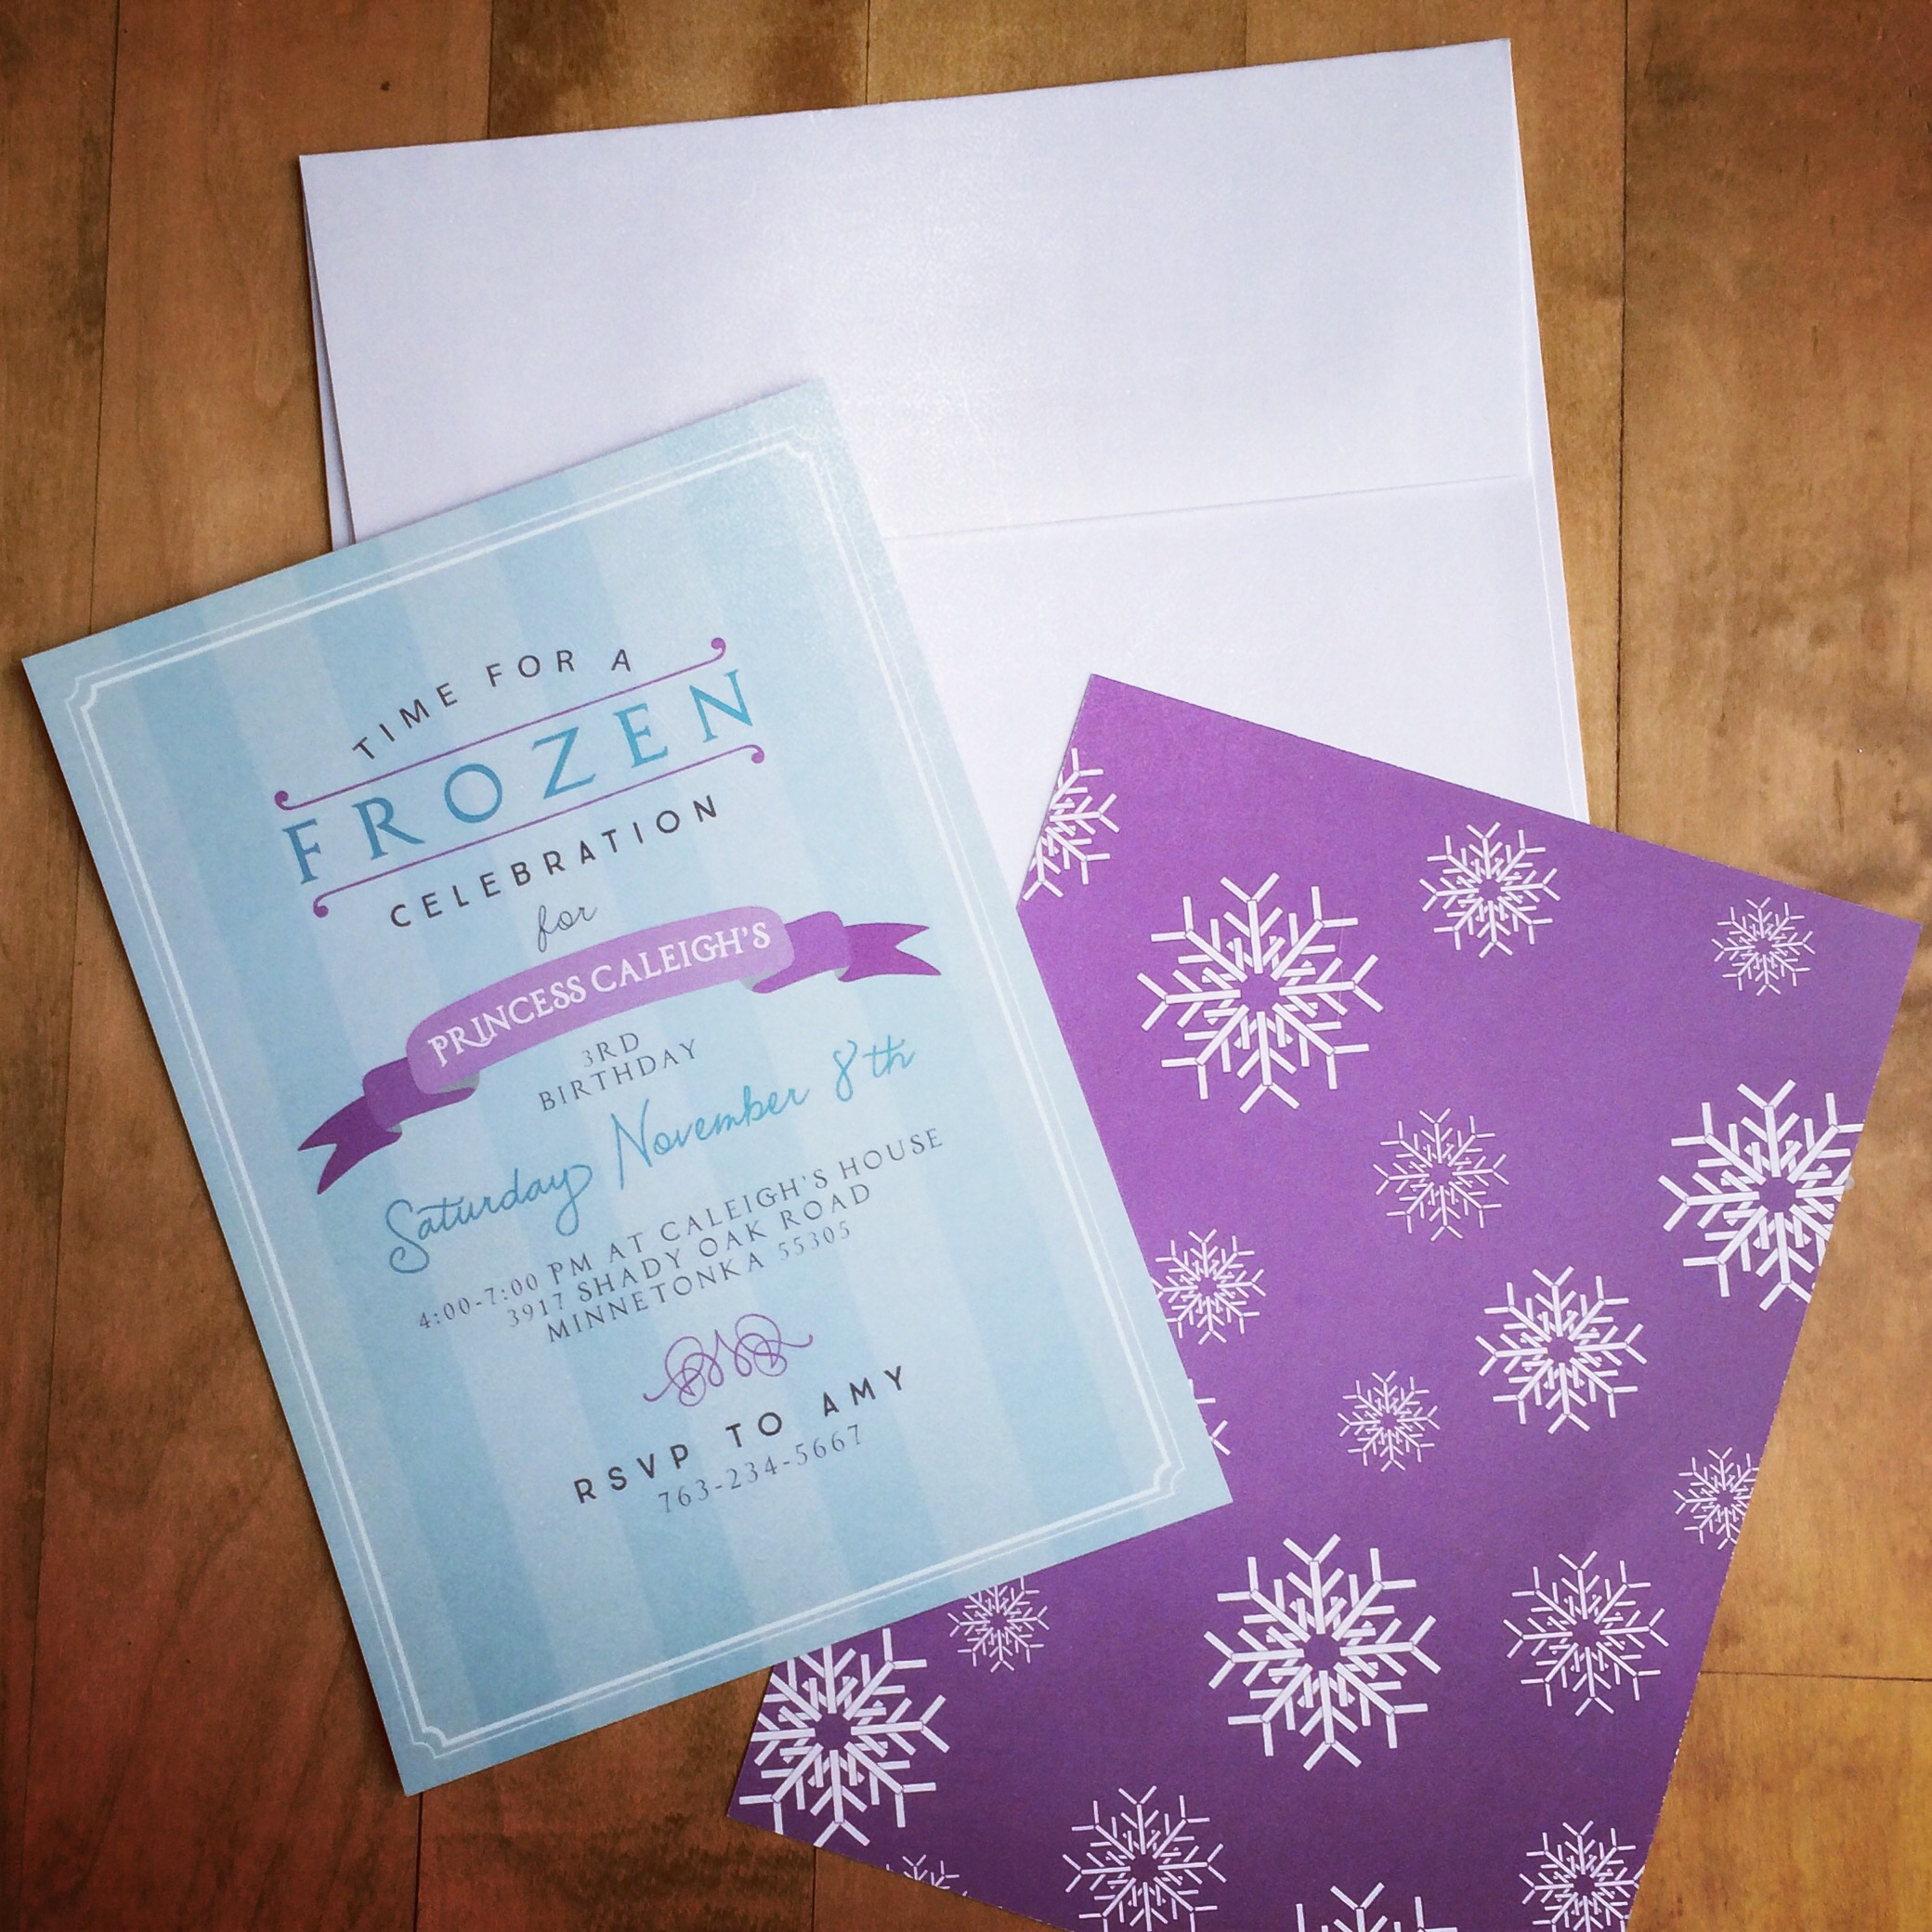 Invitations done by Jess Kasteler Design Studio